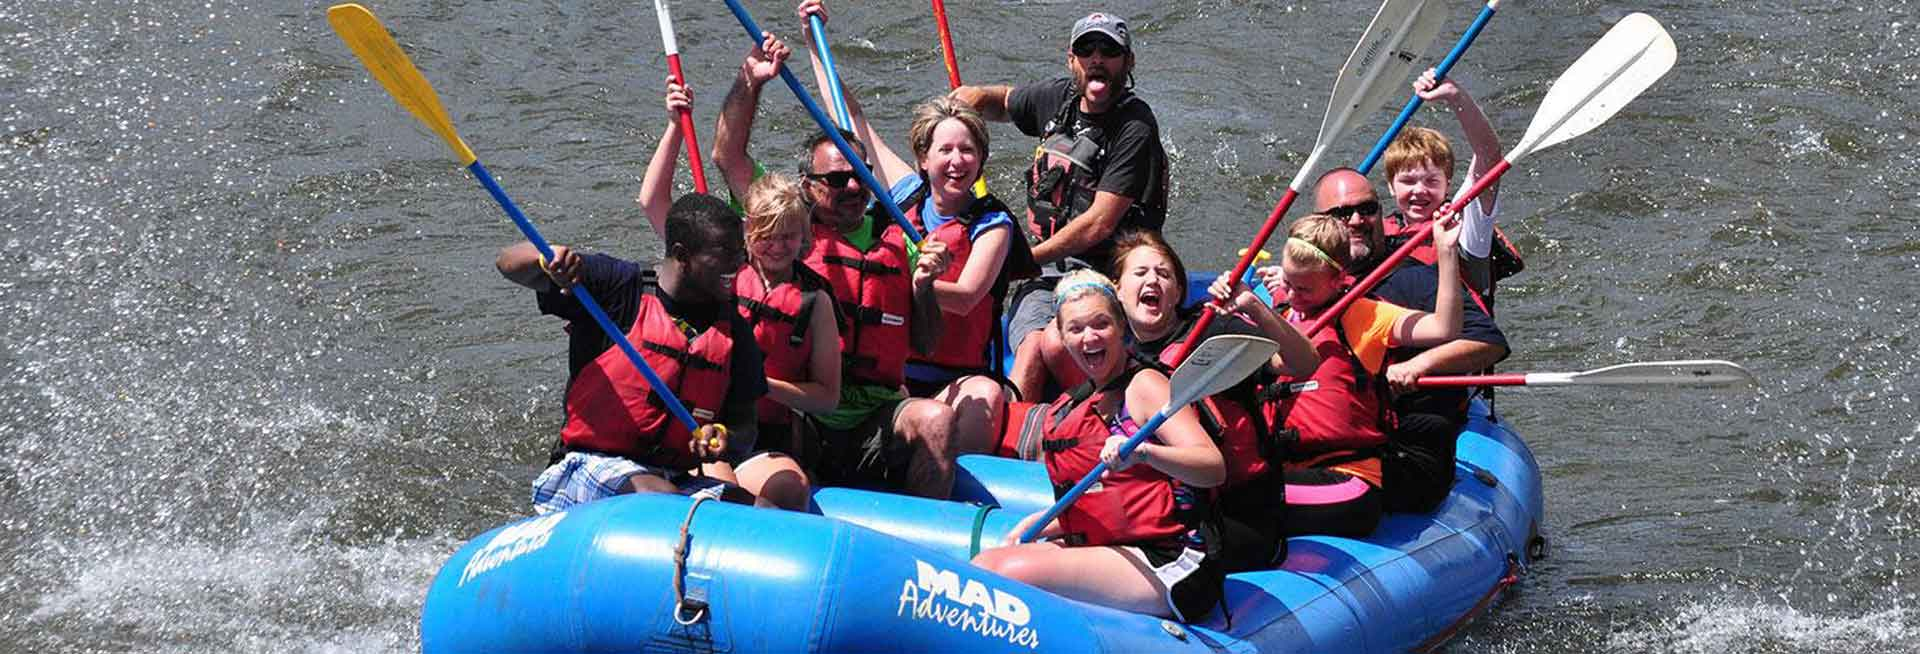 Group of whitewater rafters.